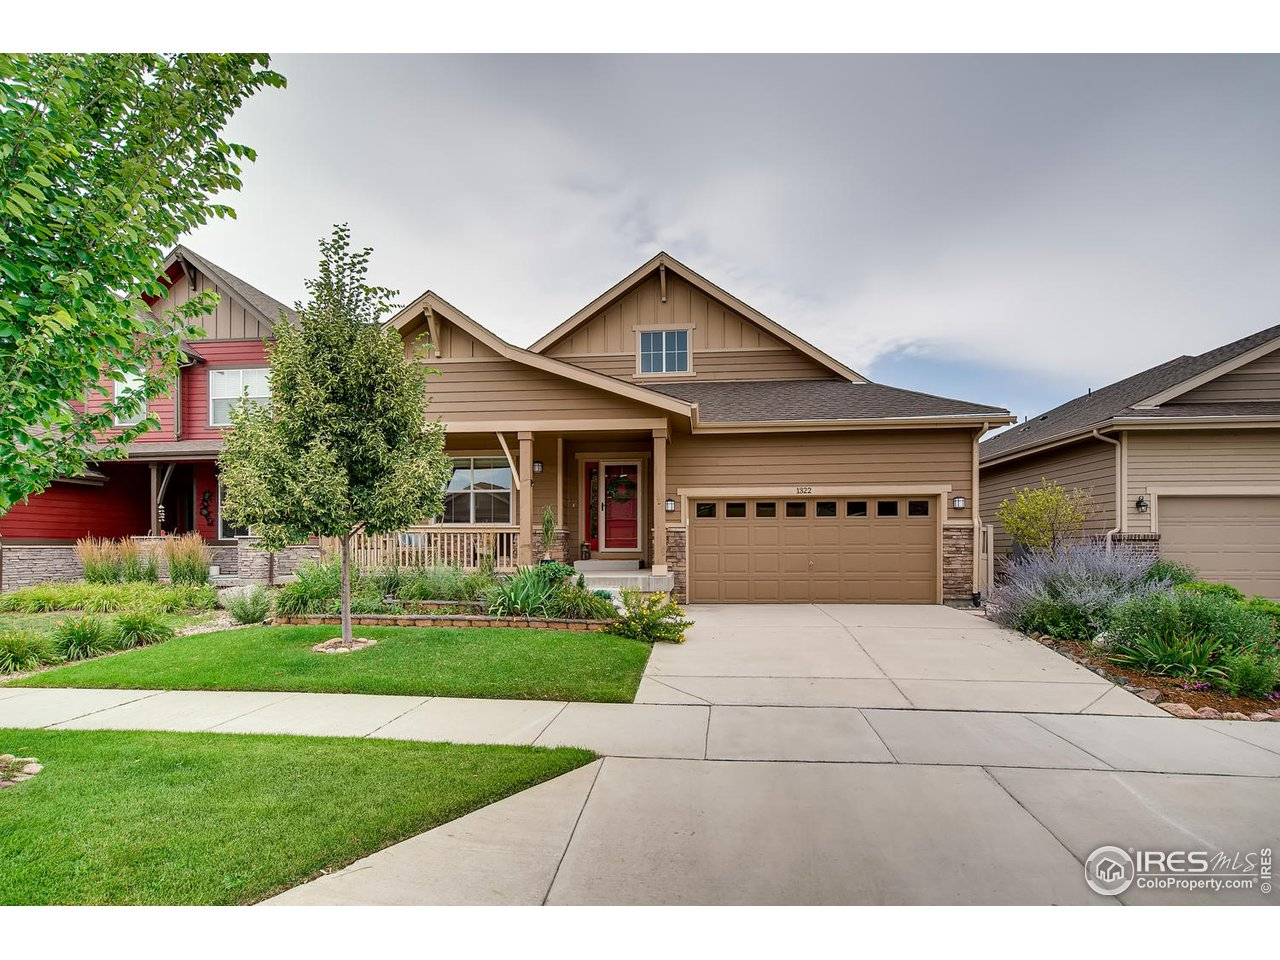 1322 Bluemoon Dr, Longmont CO 80504